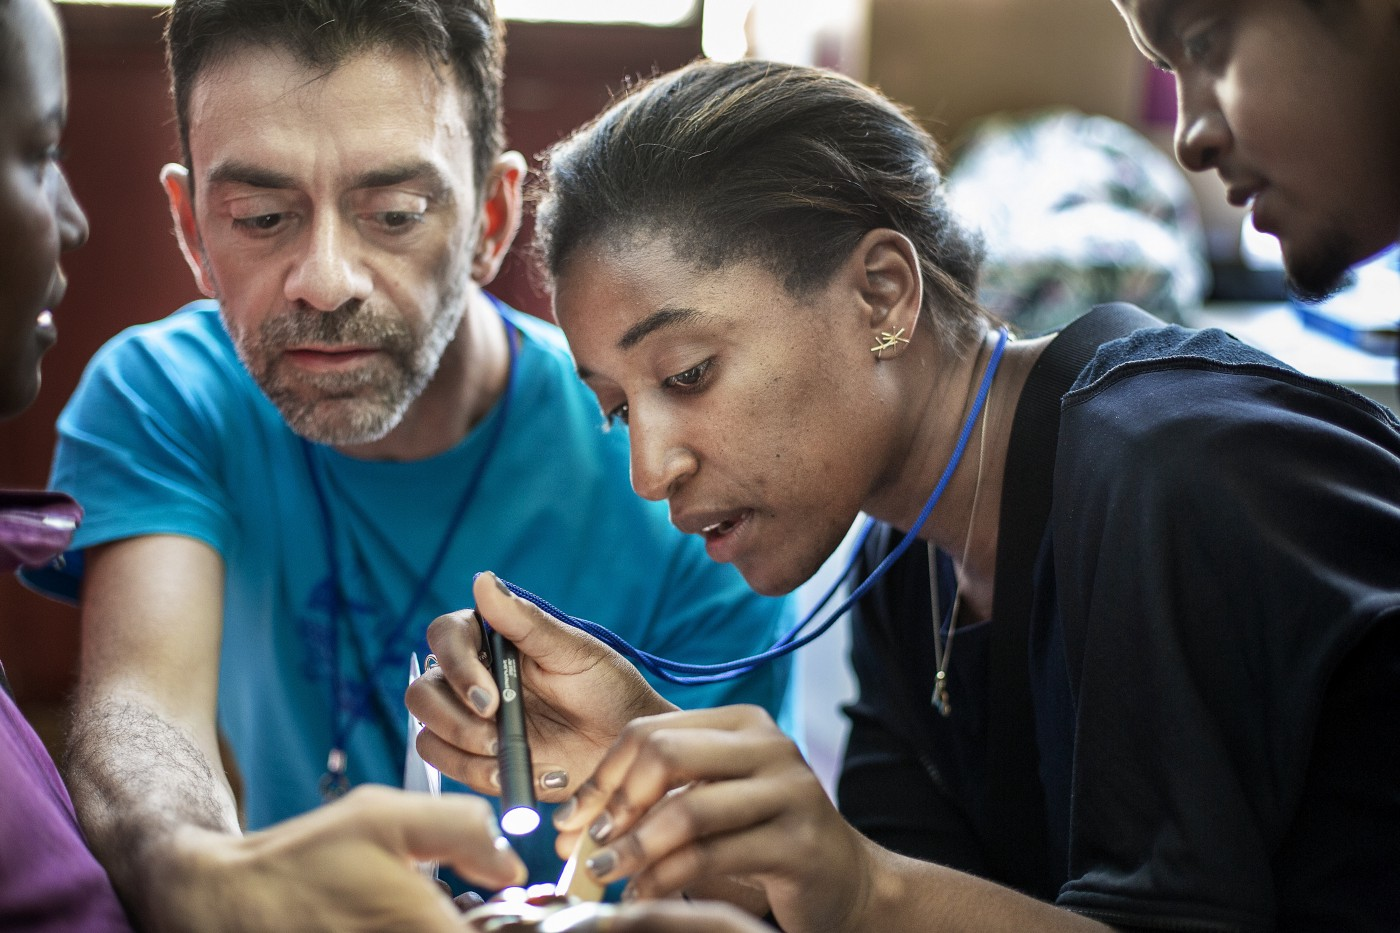 Cleft Surgeon, Fellow, Naikhoba Munabi of the US, Cleft Surgeon Luca Autelitano of Italy evaluates a patient with me during a